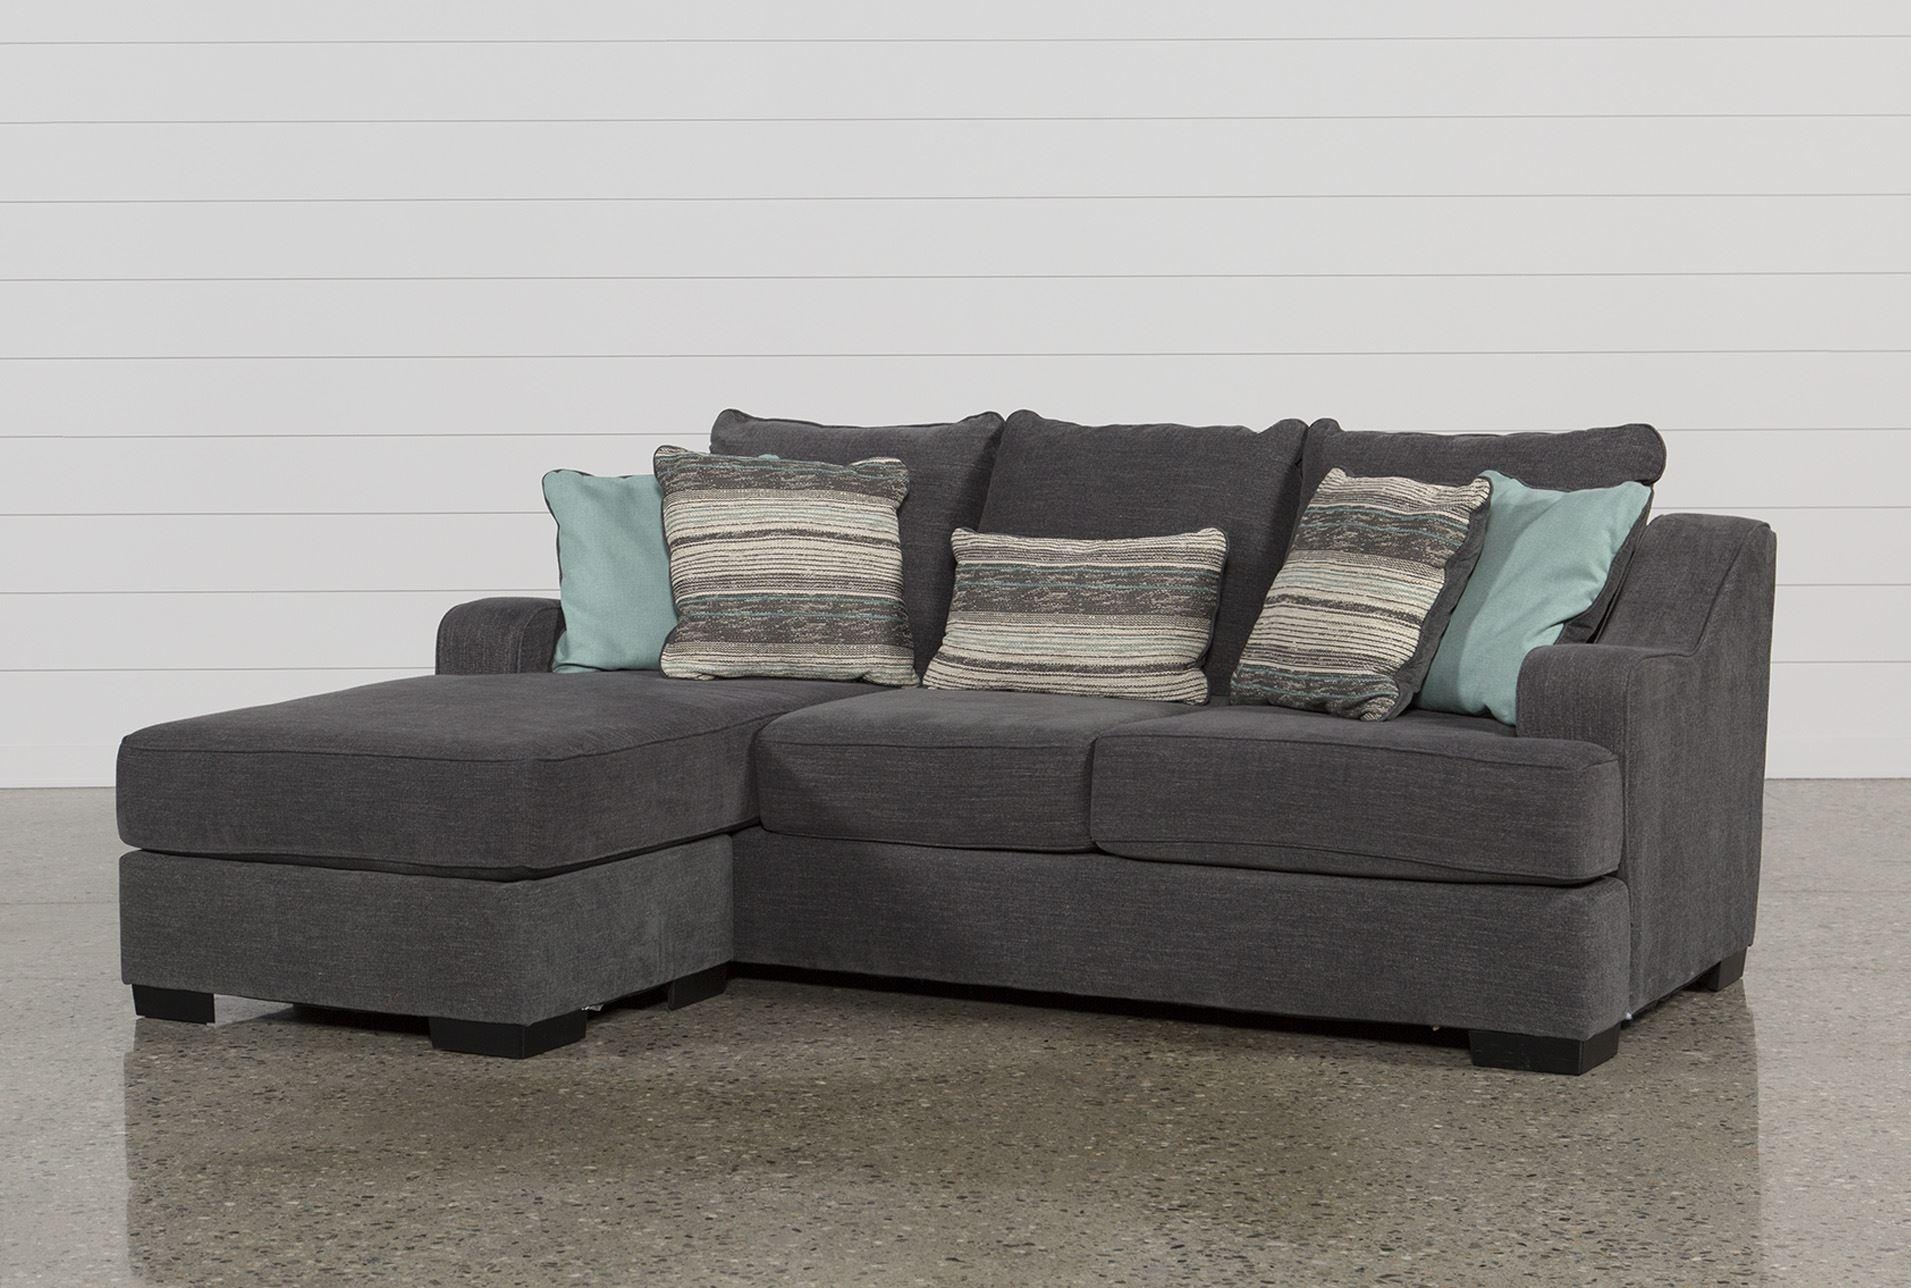 Sofas: Simmons Sleeper Sofa | Leather Queen Sleeper Sofa | Simmons Intended For Simmons Sleeper Sofas (View 13 of 20)